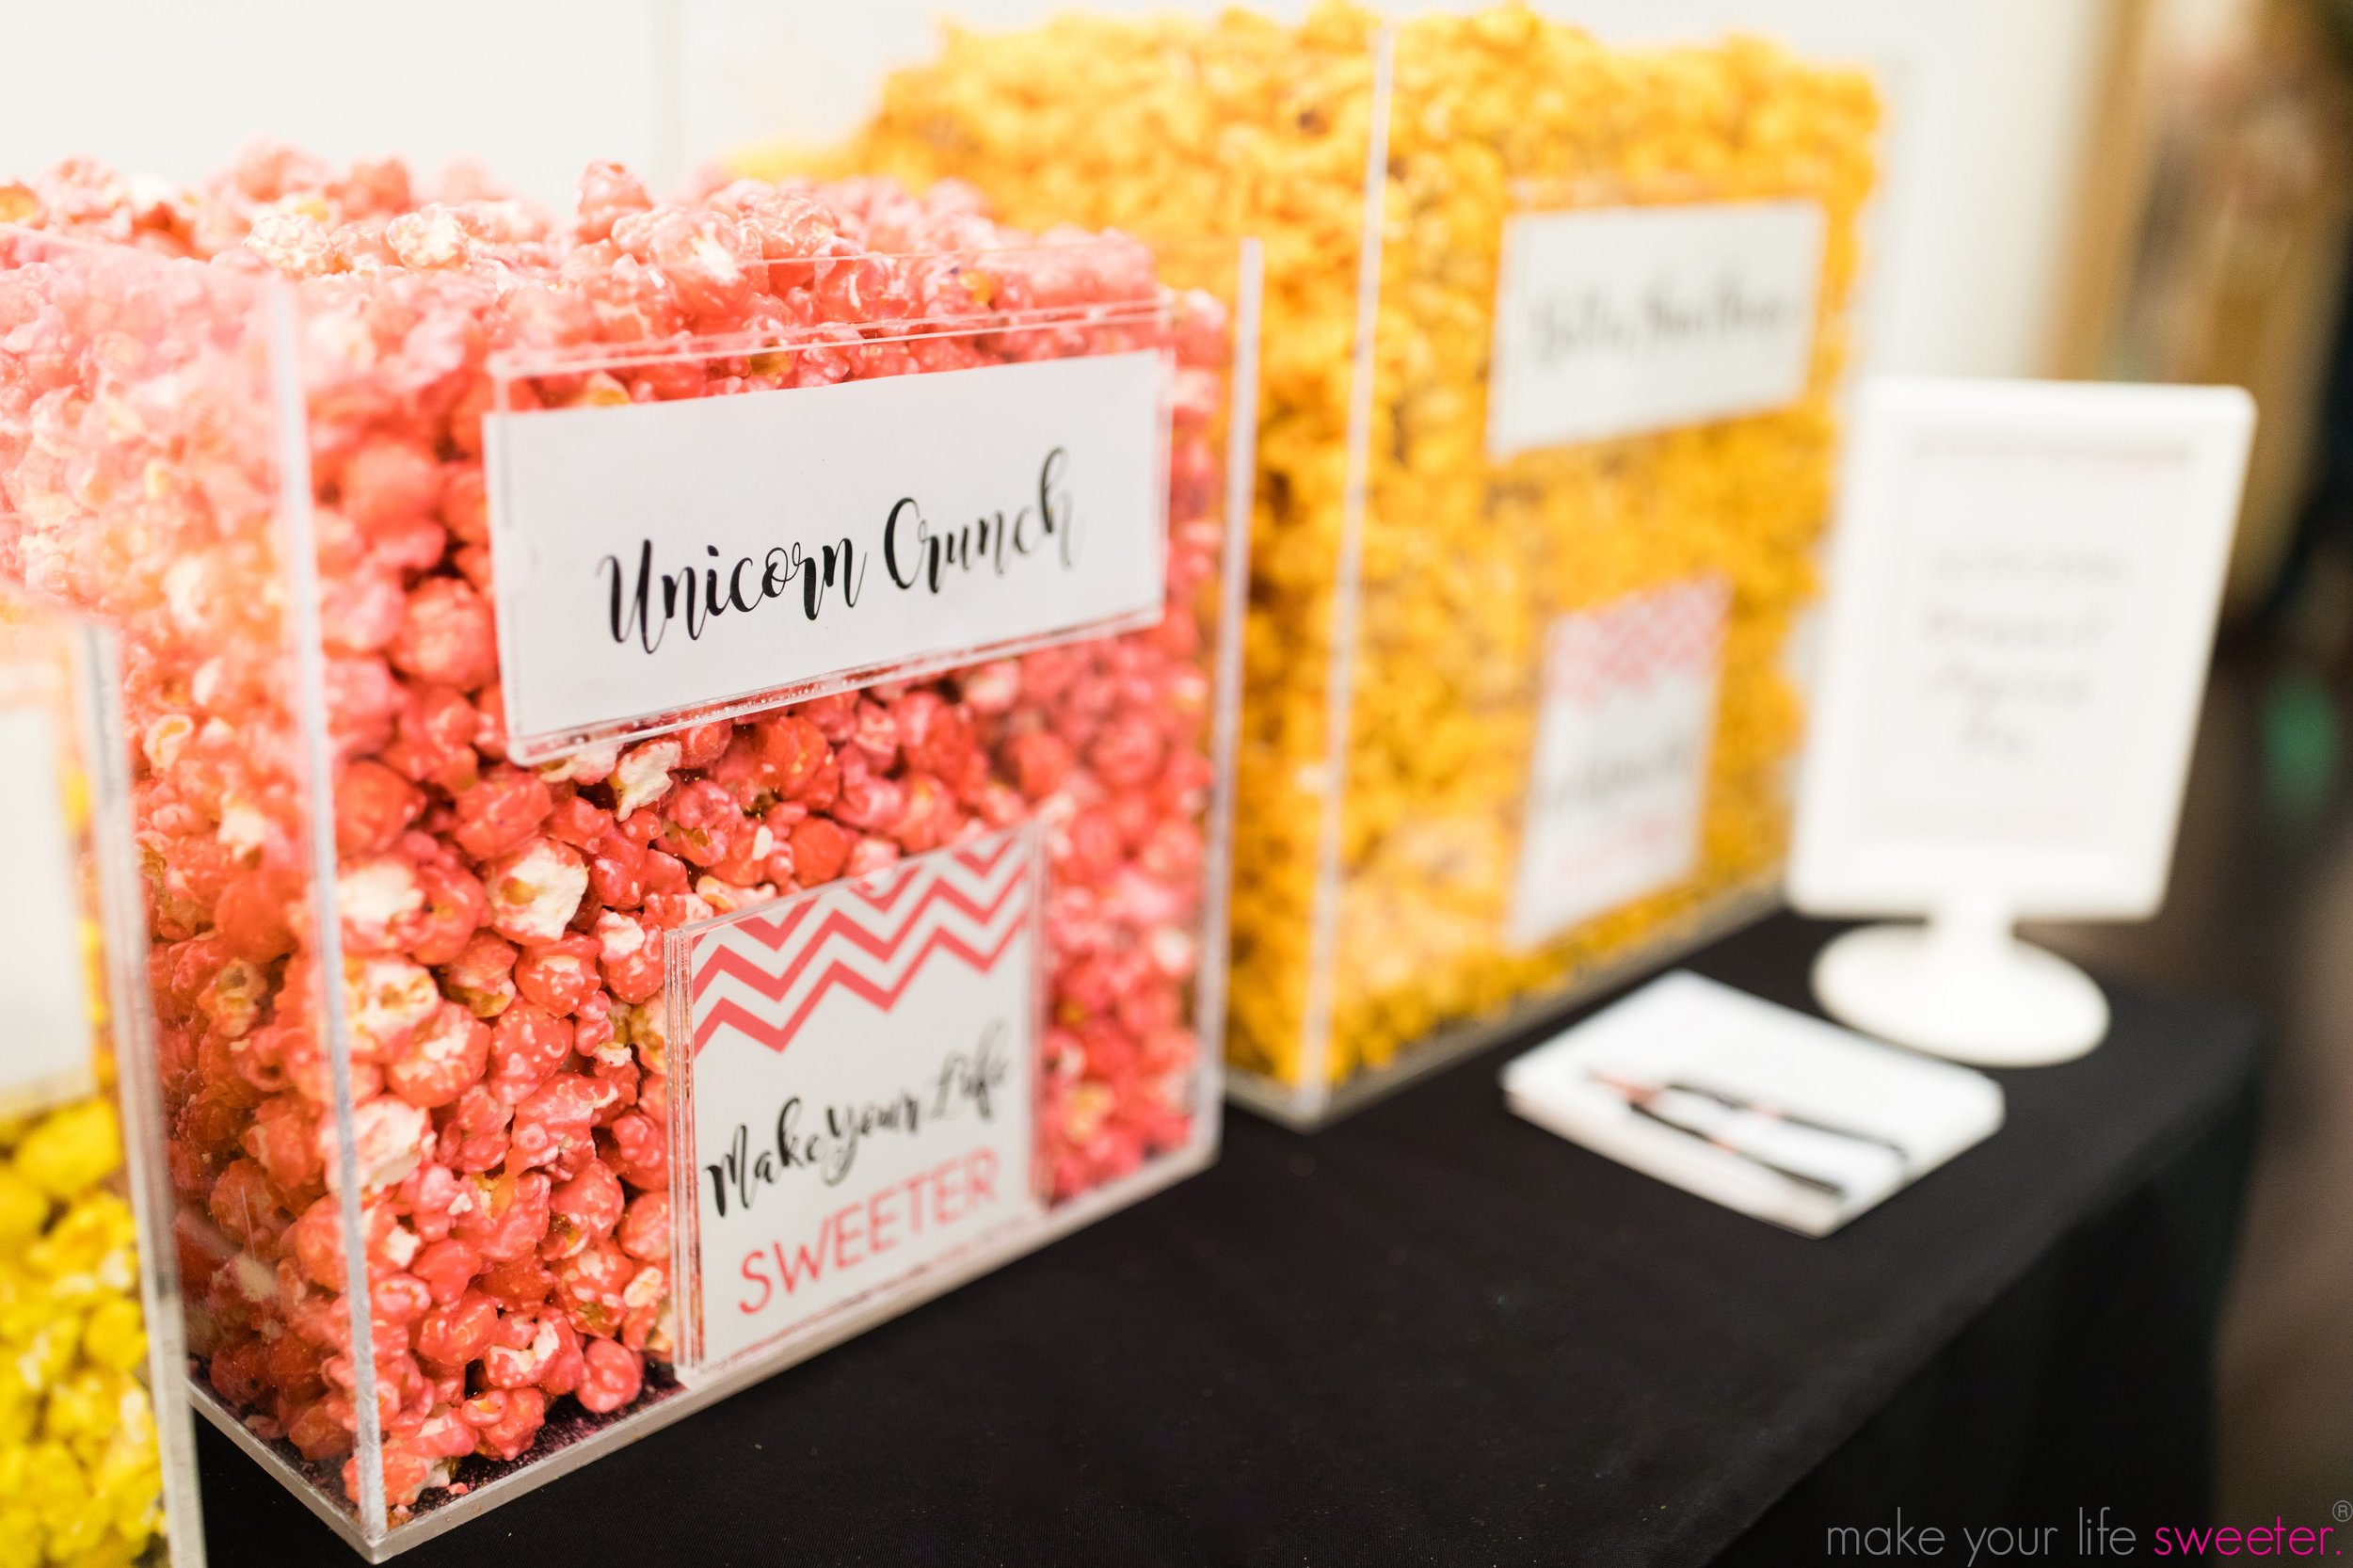 Make Your Life Sweeter Events - Facebook NYC - HotPoppin Gourmet Popcorn Bar